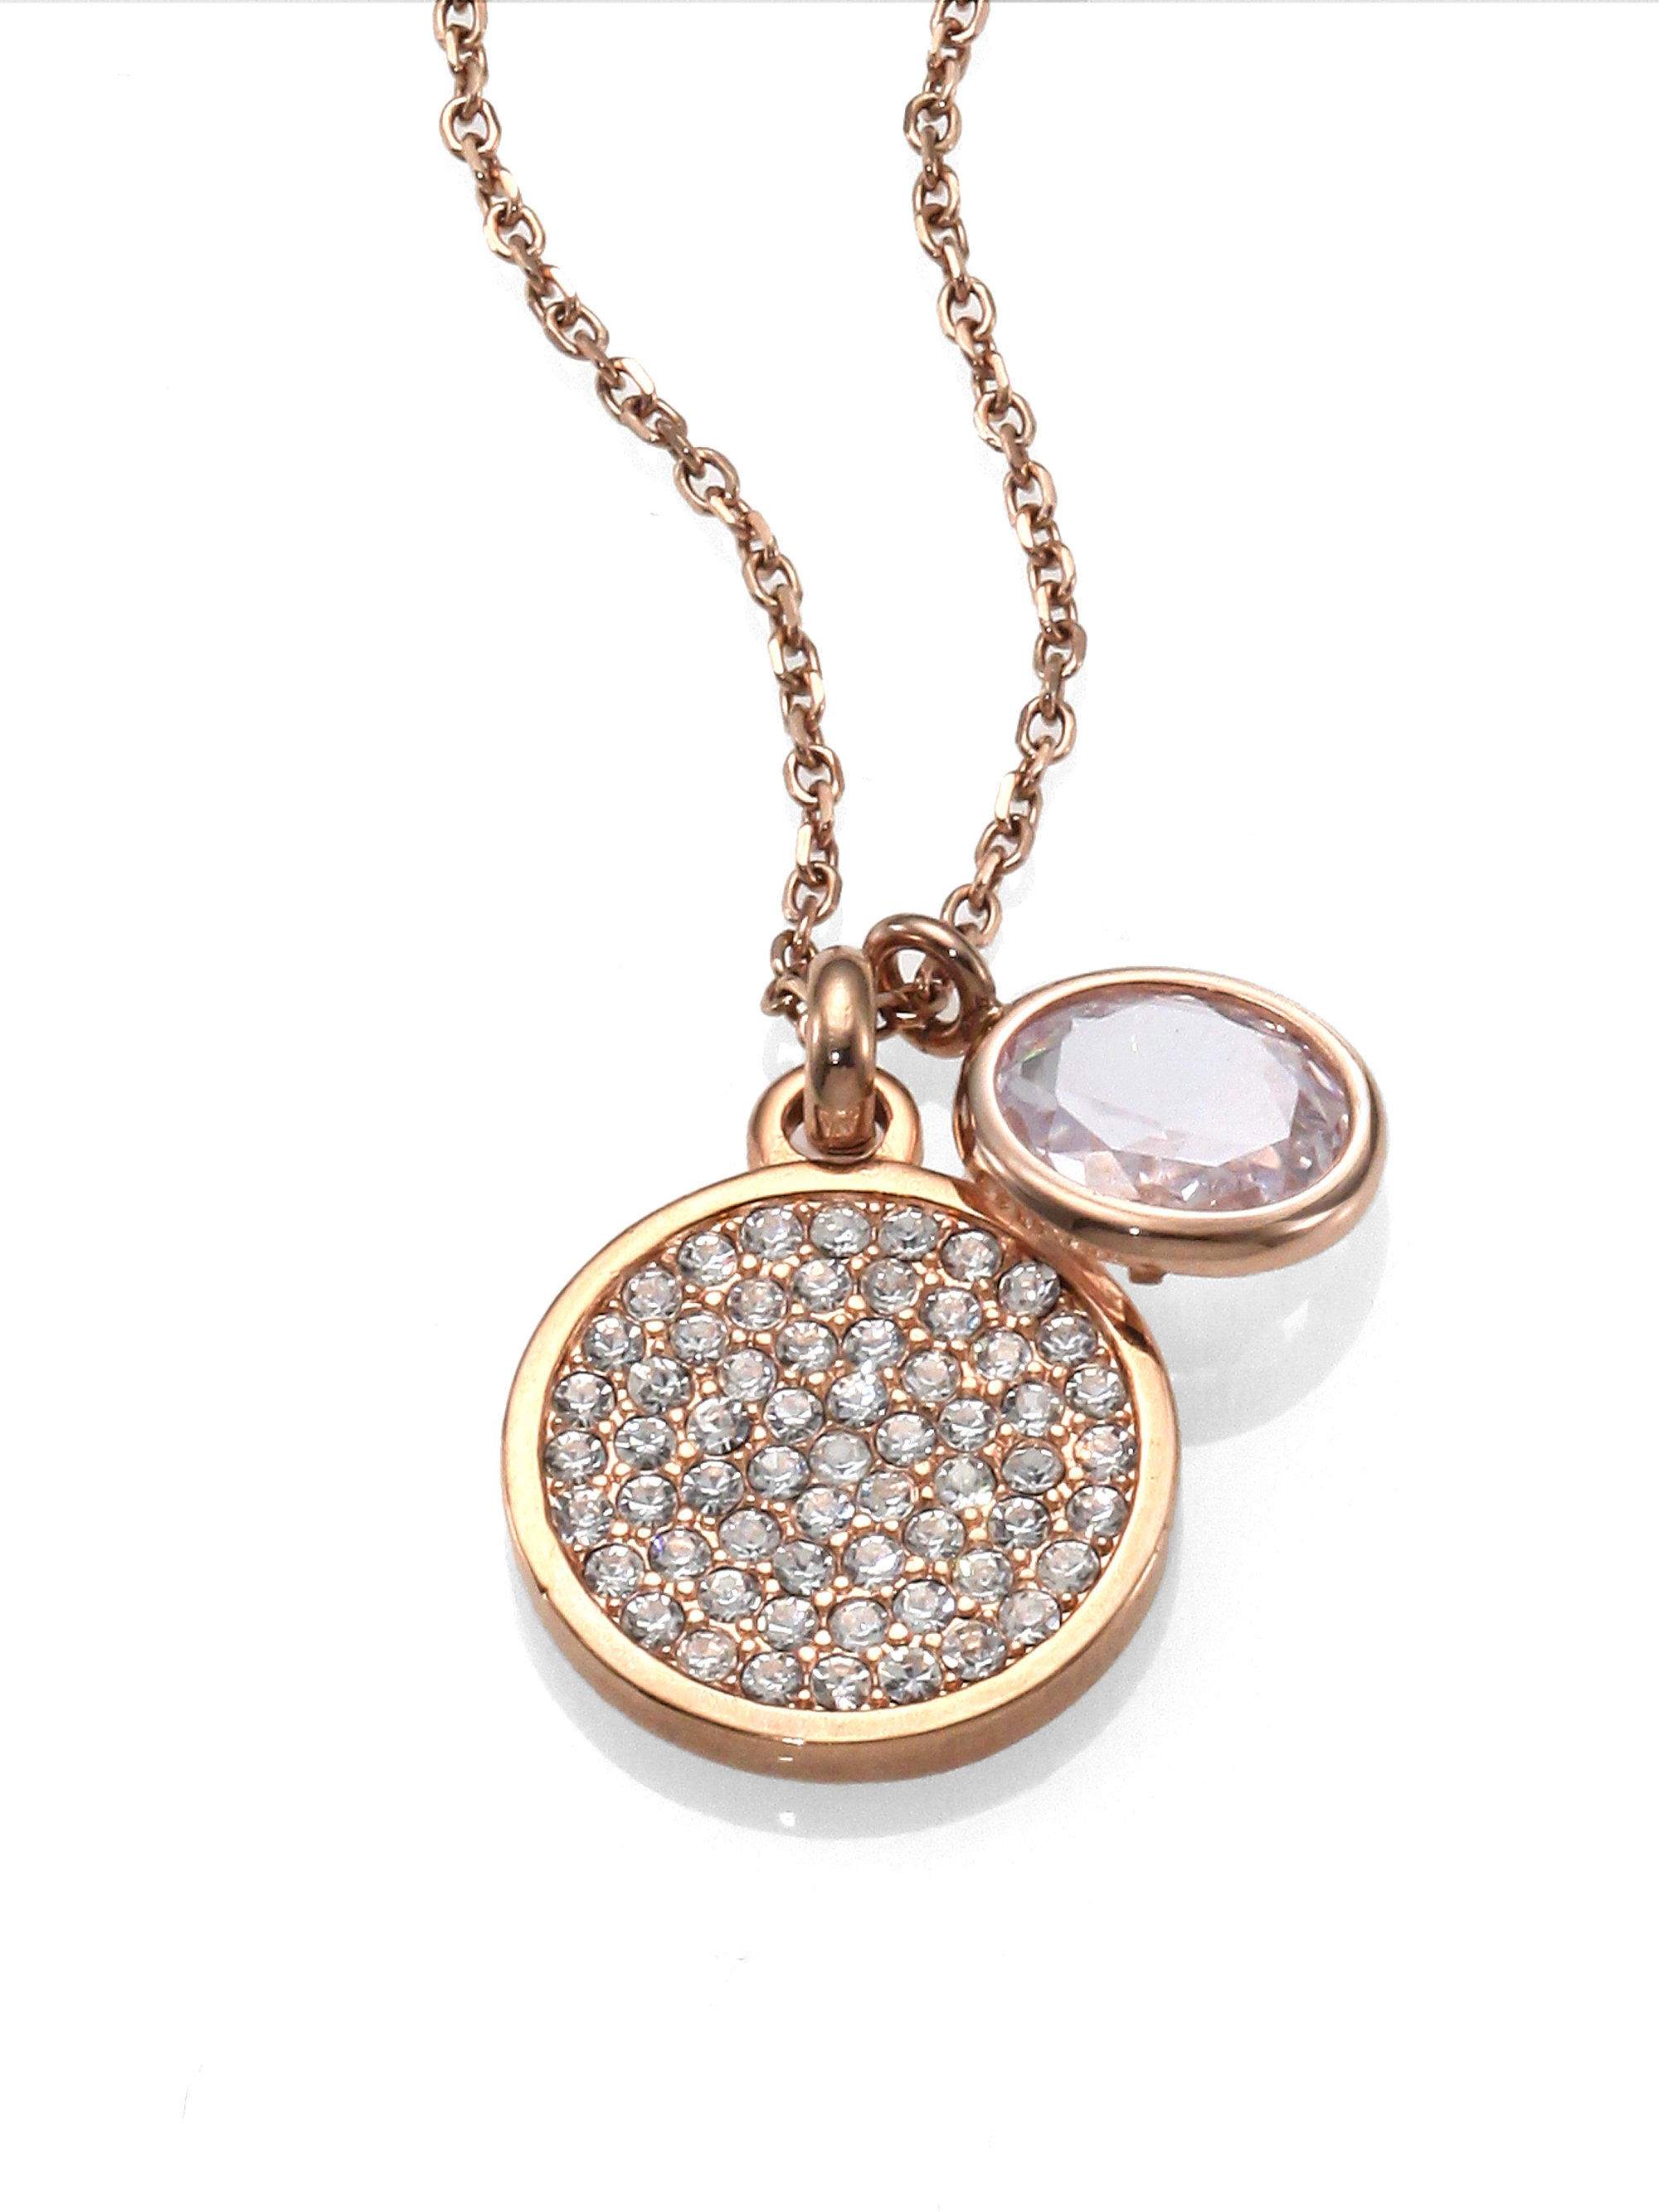 Michael kors Pave Disc Faceted Pendant Necklacerose Goldtone in Metallic | Lyst